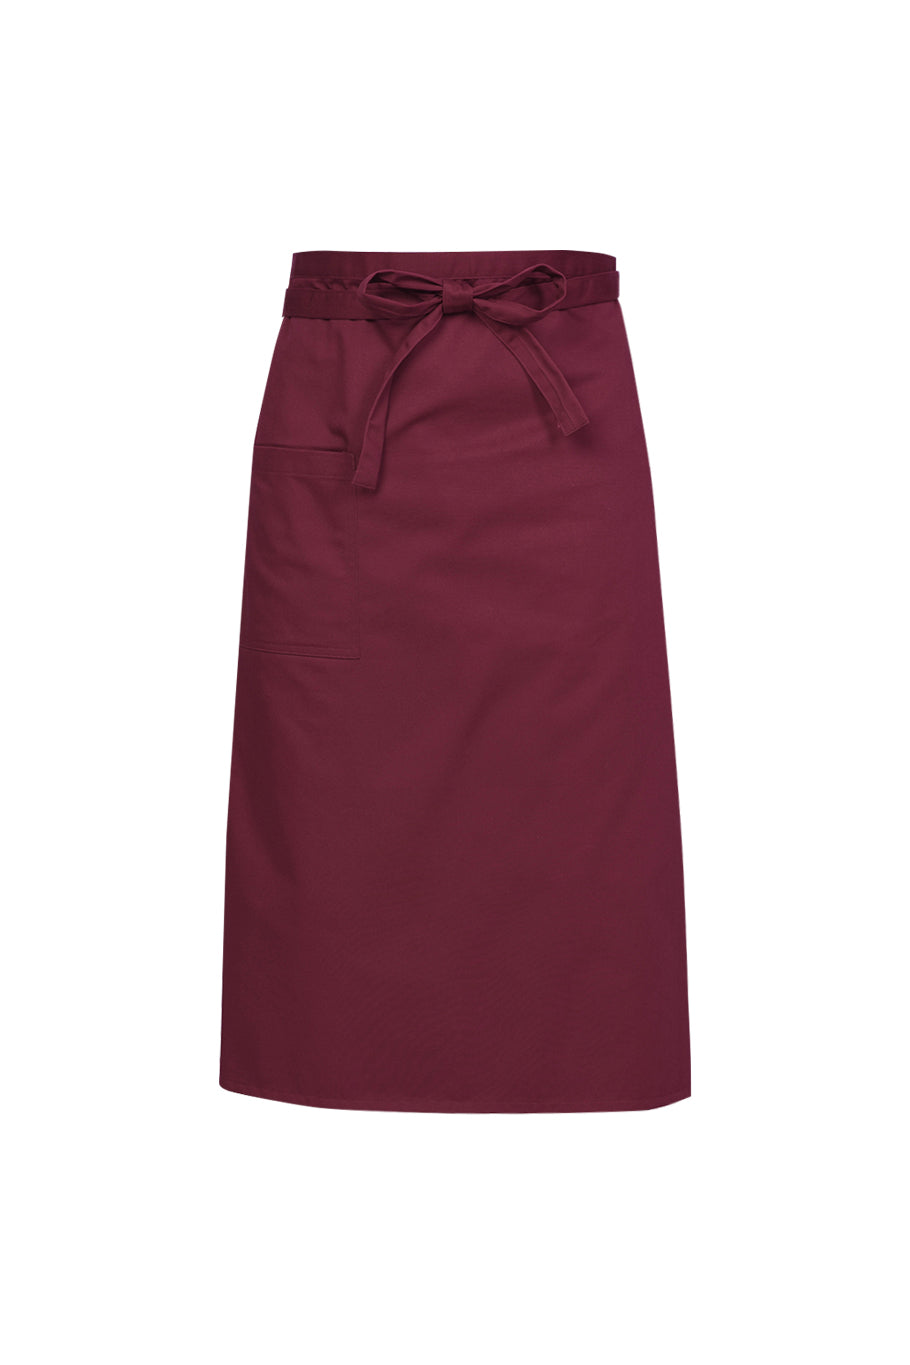 maroon red chef apron